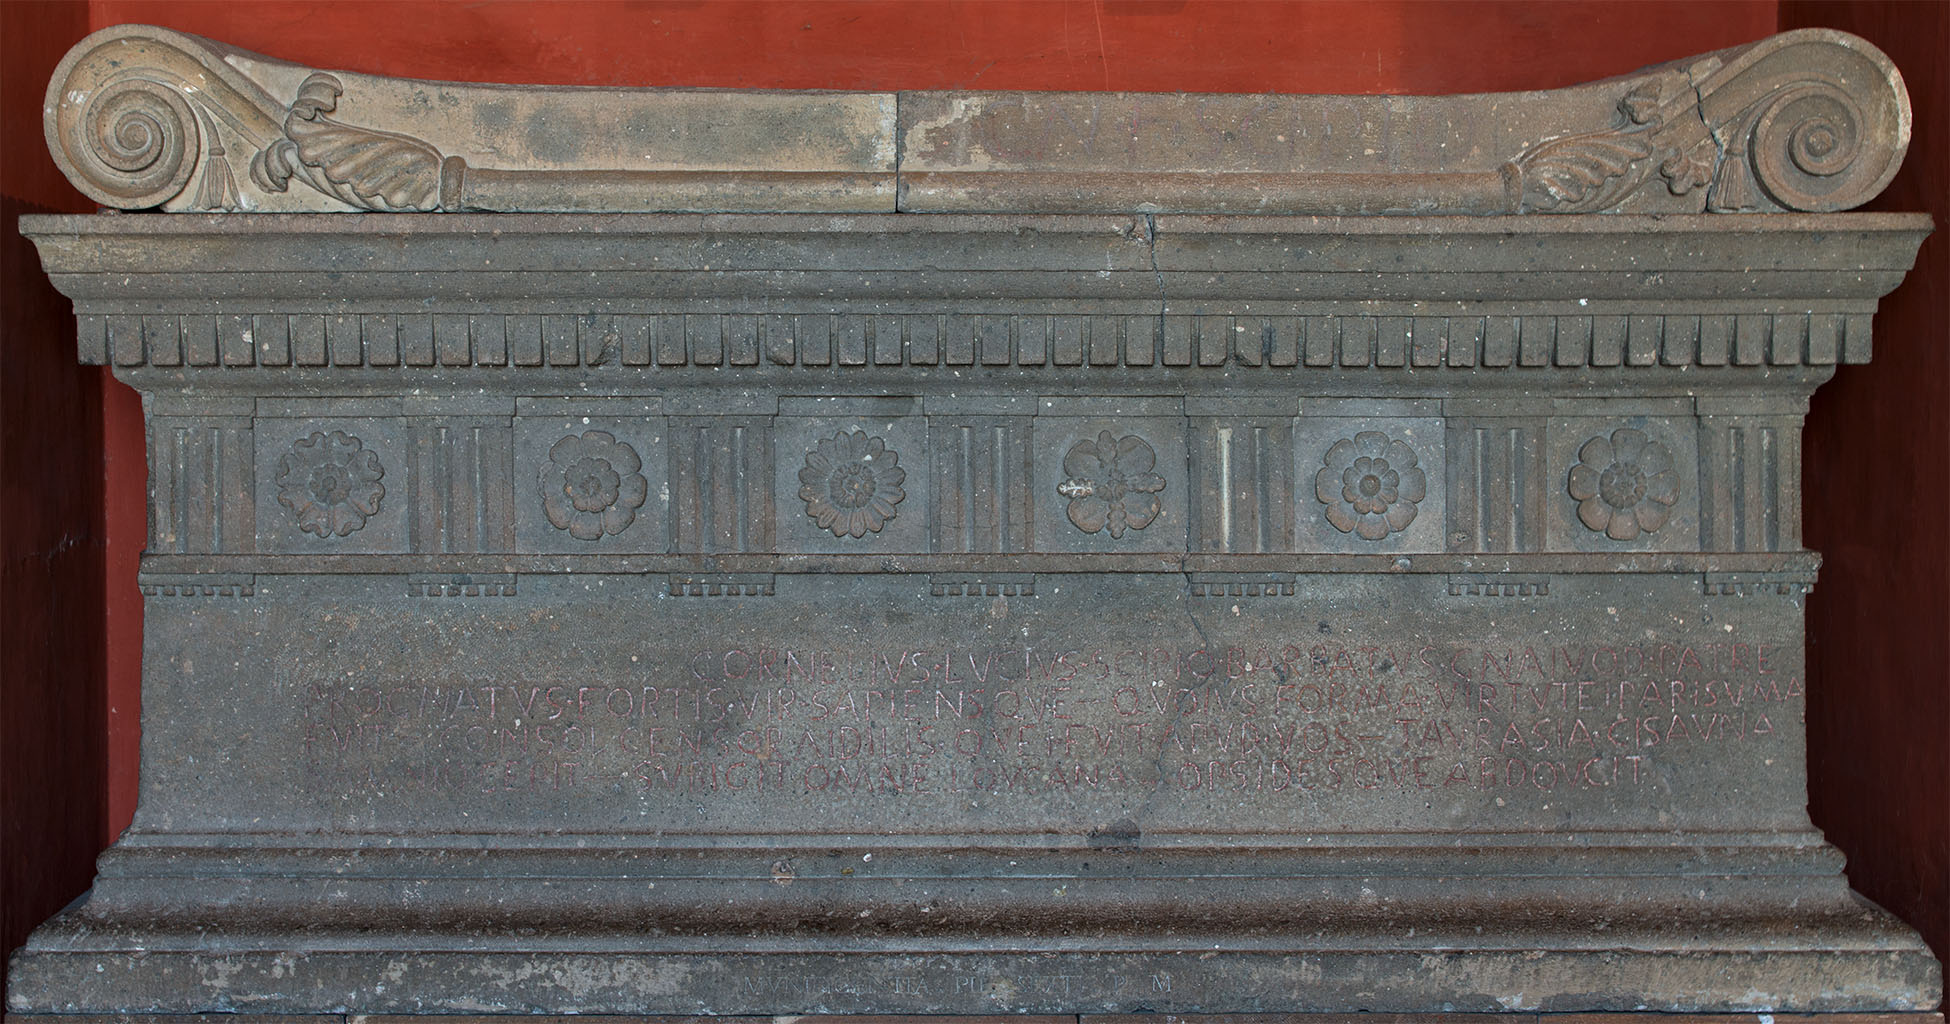 Sarcophagus of Lucius Cornelius Scipio Barbatus (original). The Tomb of the Scipios on the via Appia. Peperino. 280 BCE. Inv. No. 1191. Rome, Vatican Museums, Pius-Clementine Museum, Square vestibule, 5